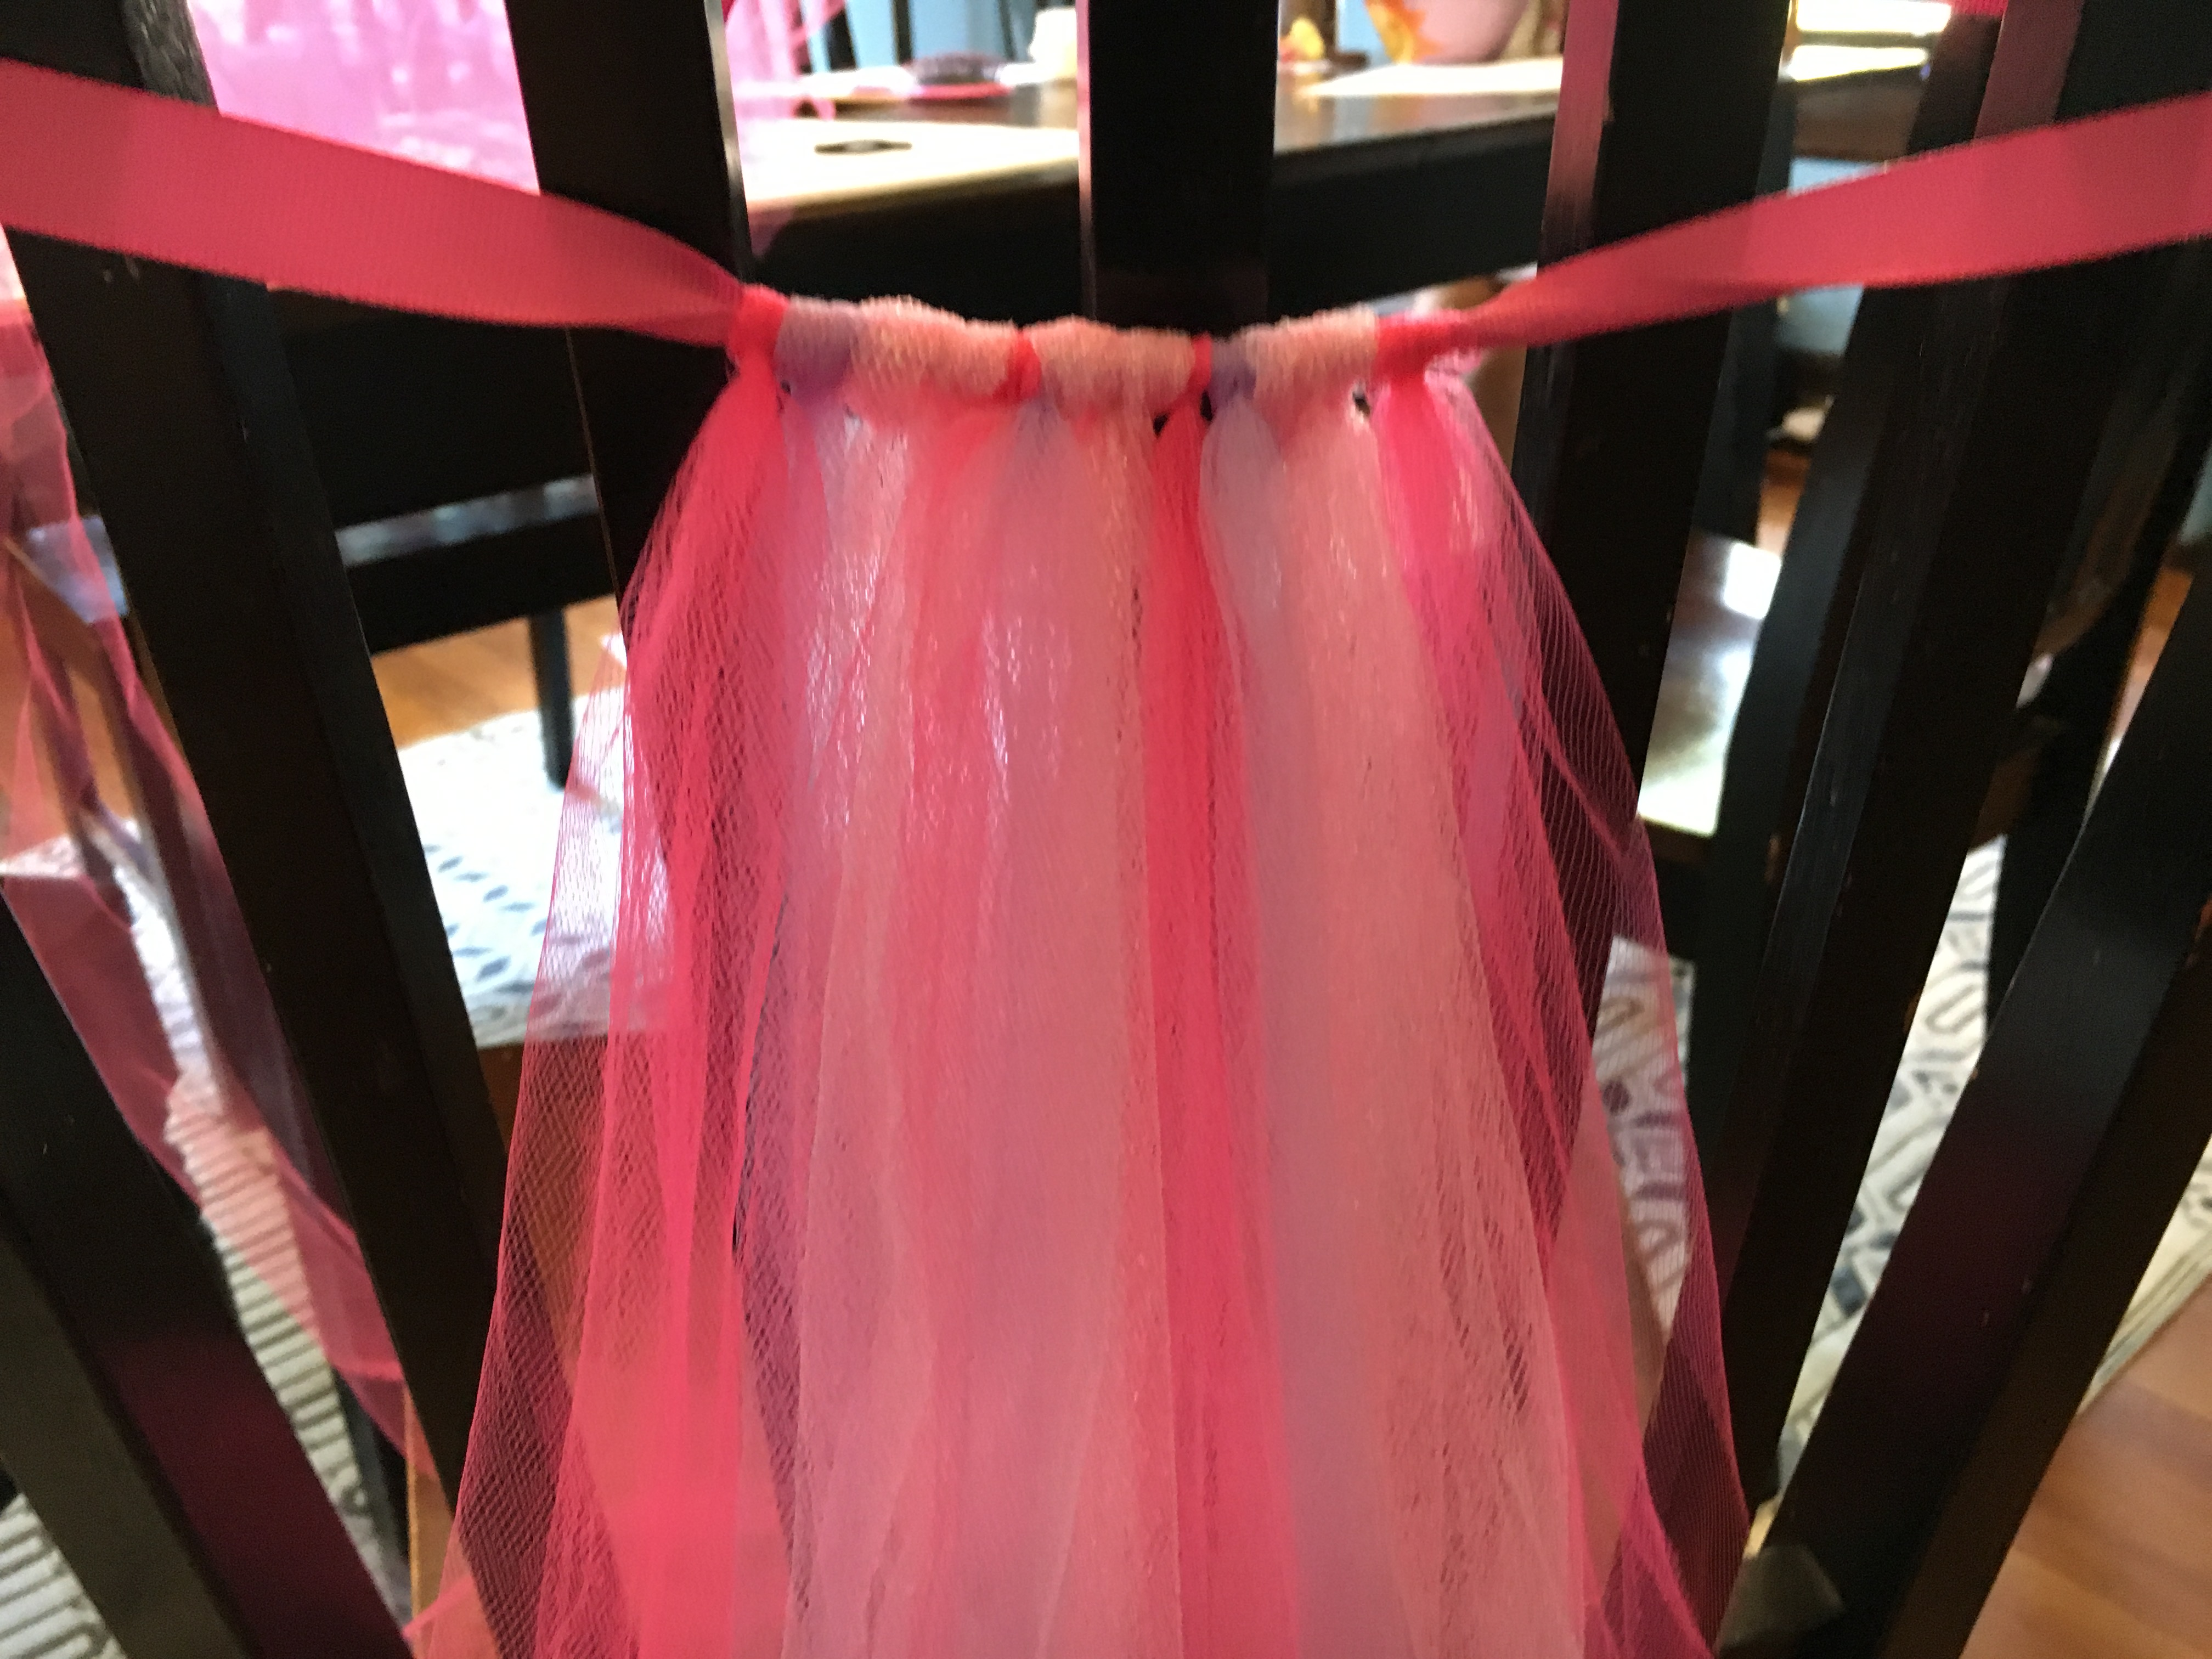 When making the DIY No Sew Tulle Tutu I found it easiest to tie the ribbon around the back of a chair to attach the tulle. That way I could quickly tie the loops while also ensuring that the length was somewhat uniform.